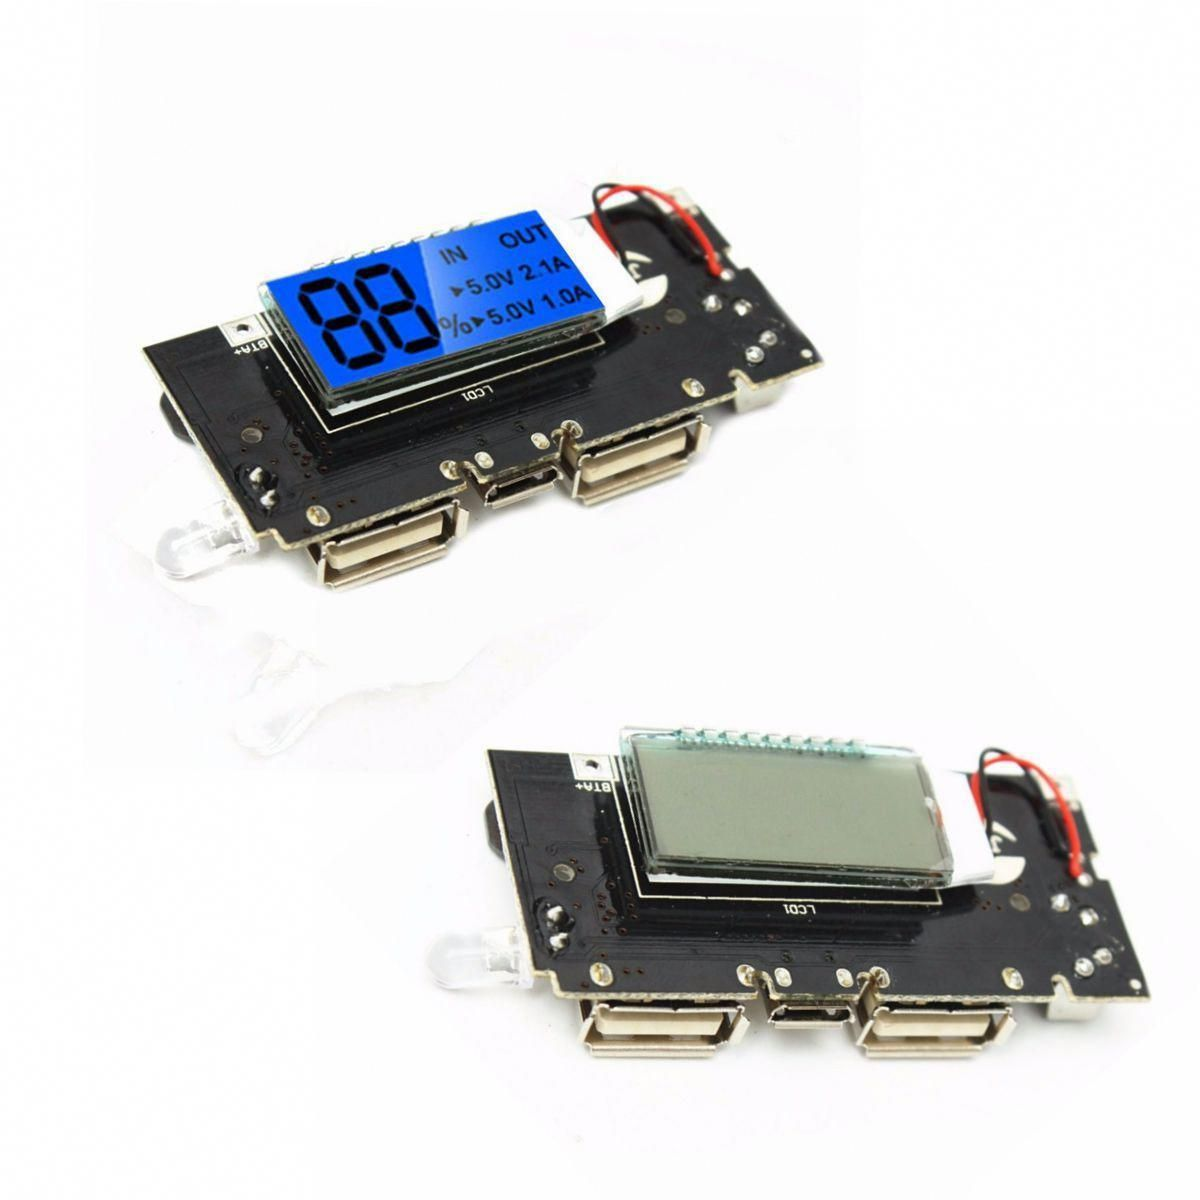 5V 2.1A Lithium Battery Power Bank Charger Module Charging Circuit PCB Board